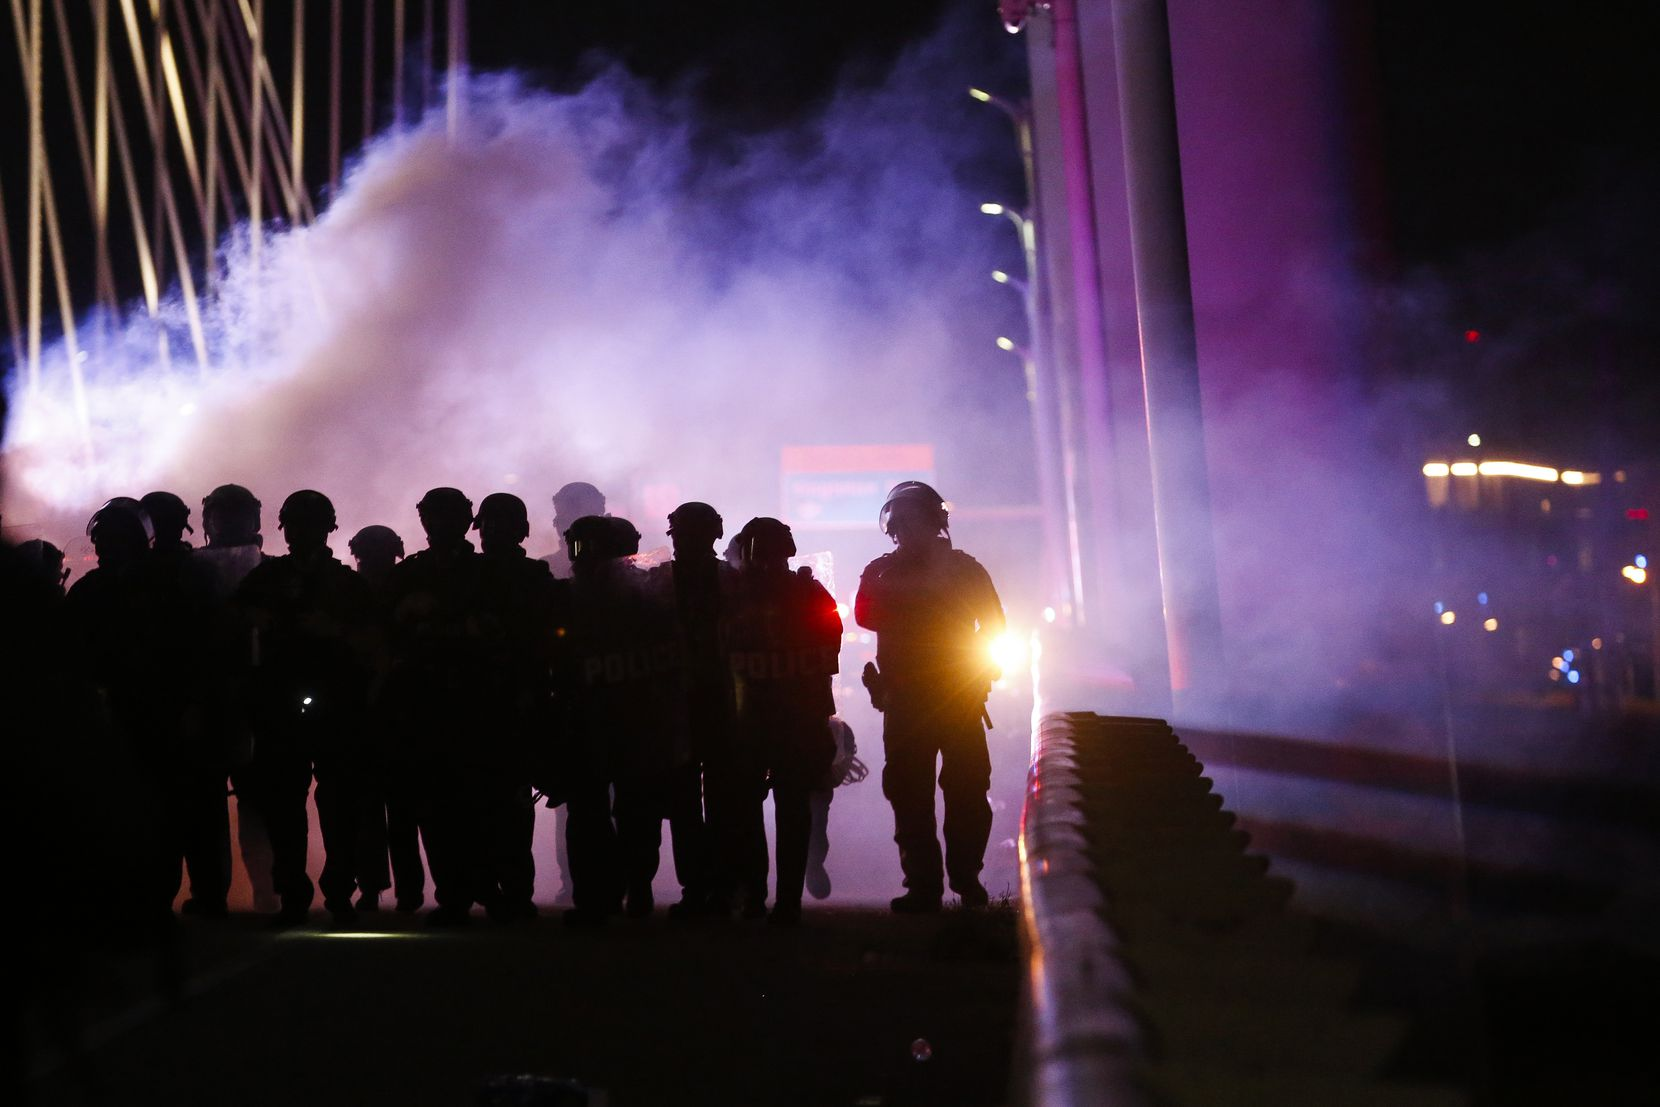 Police deploy crowd control chemical agents as they surround protesters who marched onto the Margaret Hunt Hill Bridge while demonstrating against police brutality on Monday, June 1, 2020, in Dallas. Hundreds of protesters were detained.